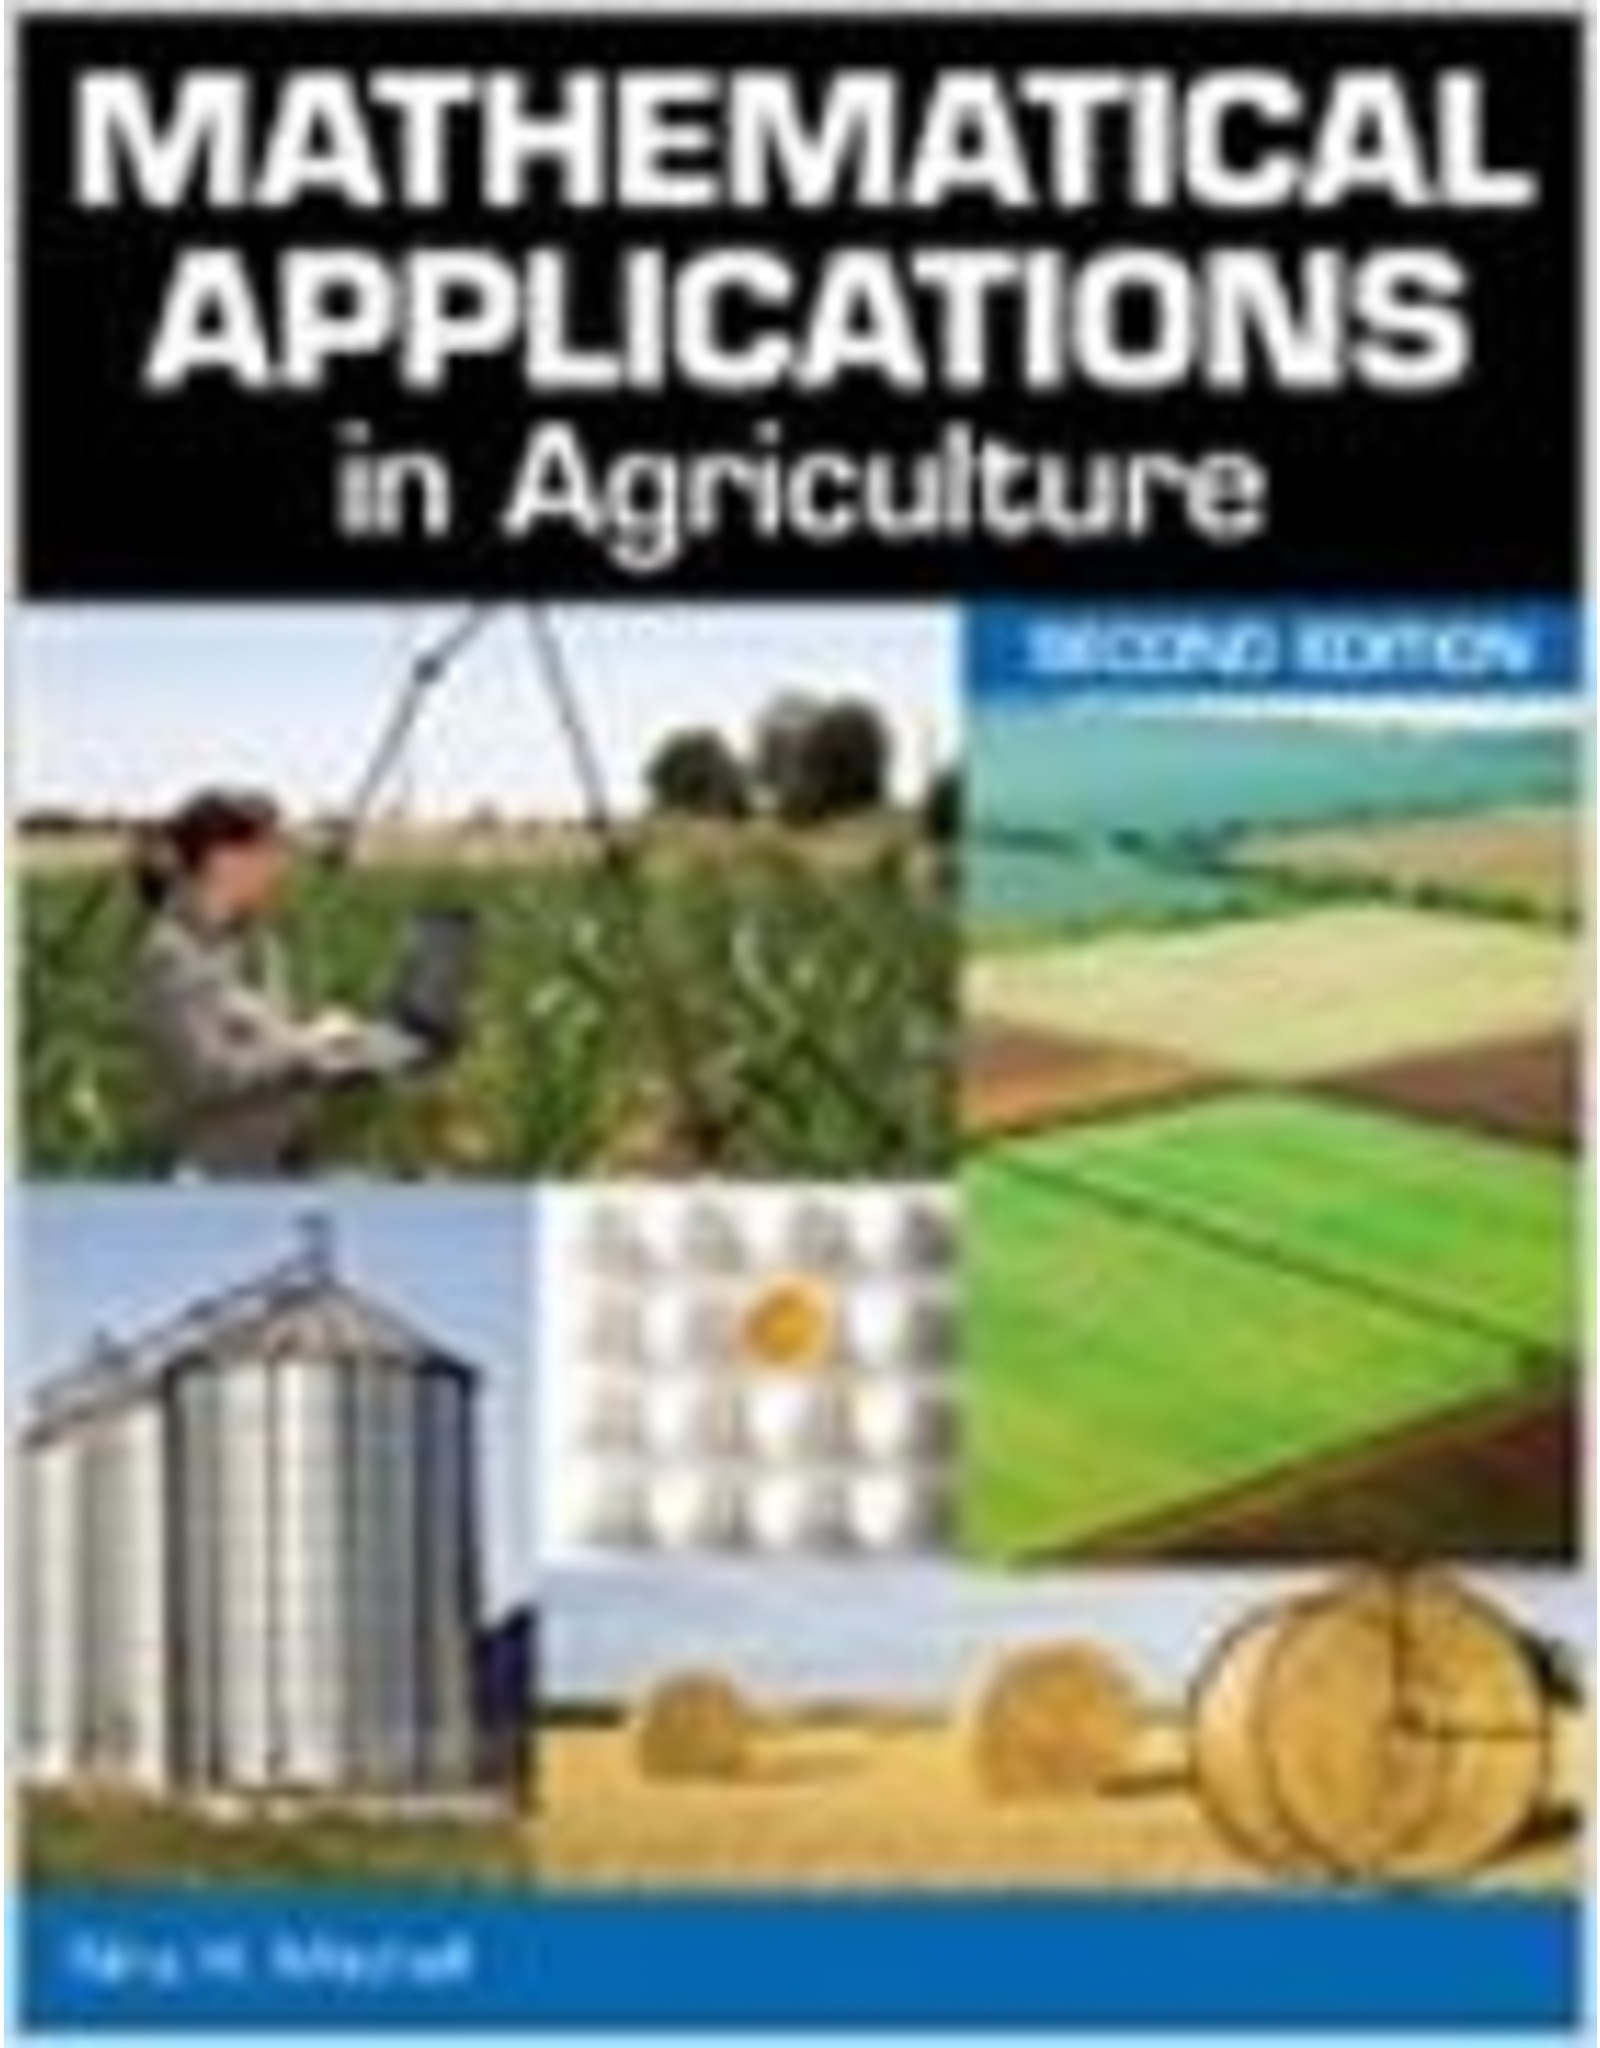 Mathematical Applications in Agriculture - 2nd Ed.